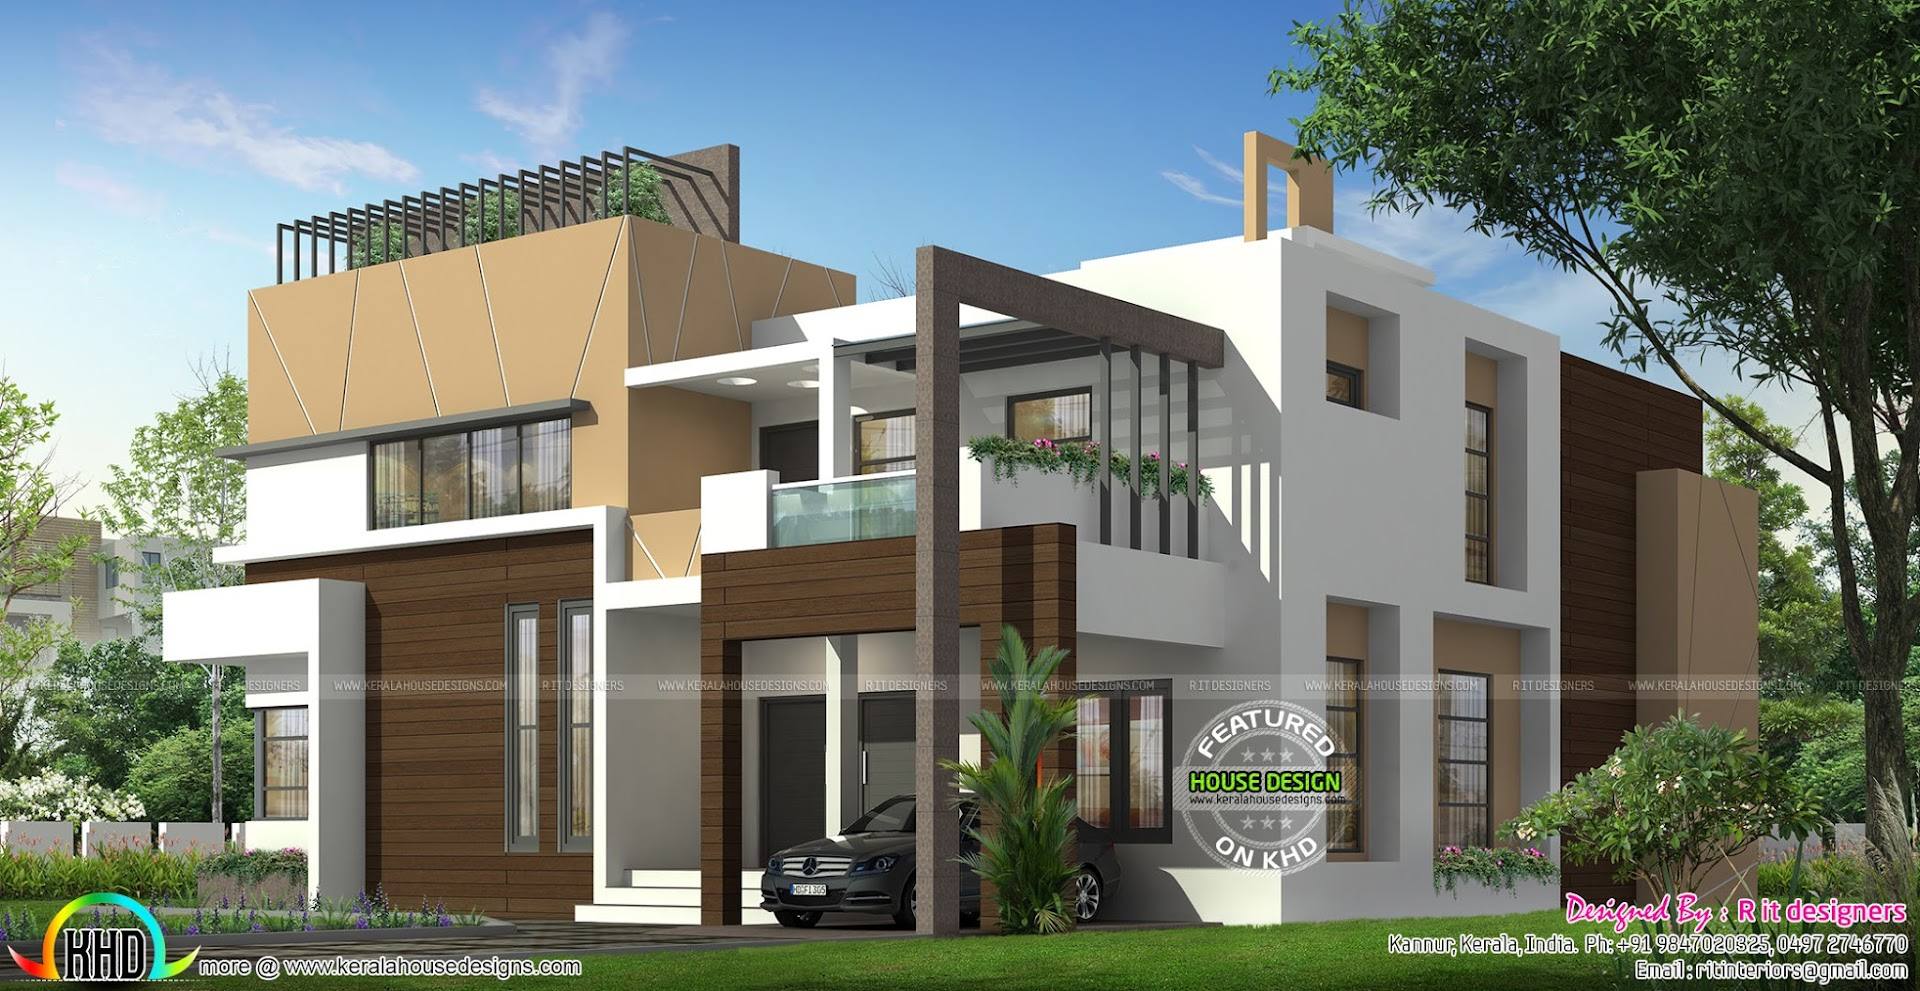 Luxurious 5 bedroom ultra modern home kerala home design for Ultra modern house designs